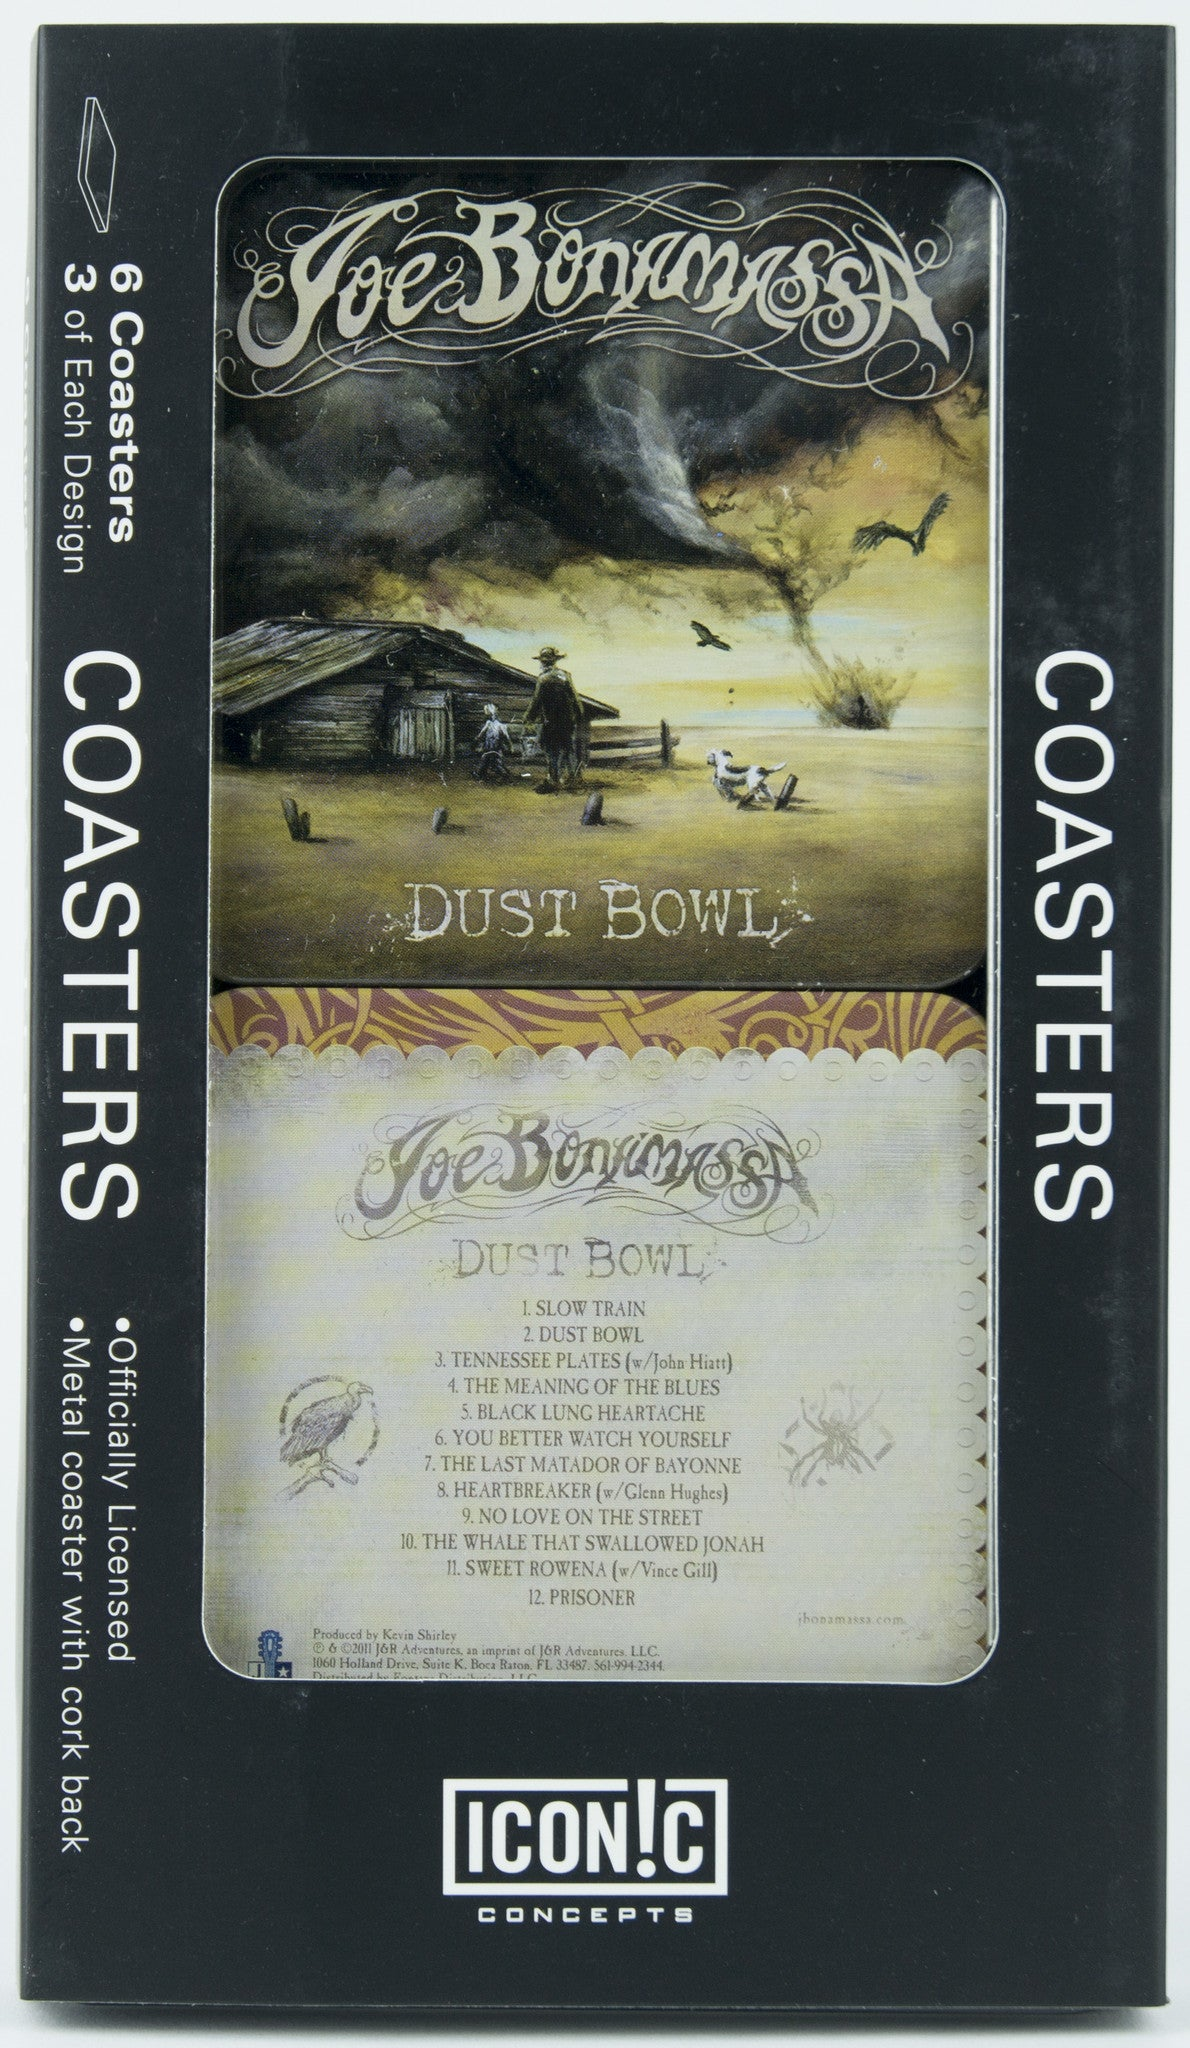 Joe Bonamassa Coasters - Dust Bowl